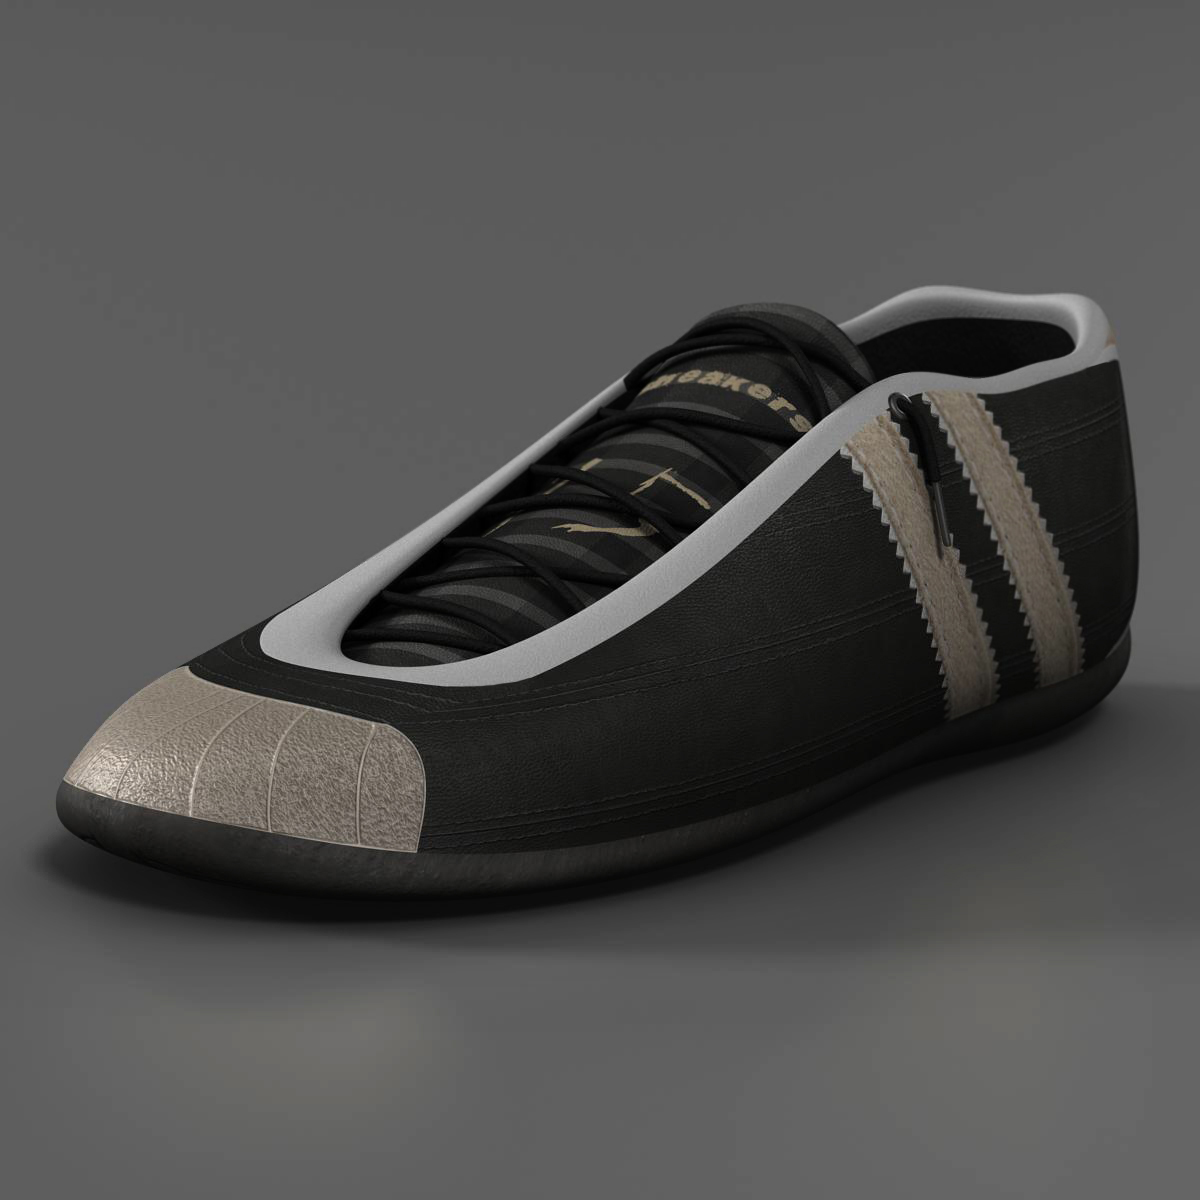 sneakers 3d model 3ds max fbx c4d le m obj 160383